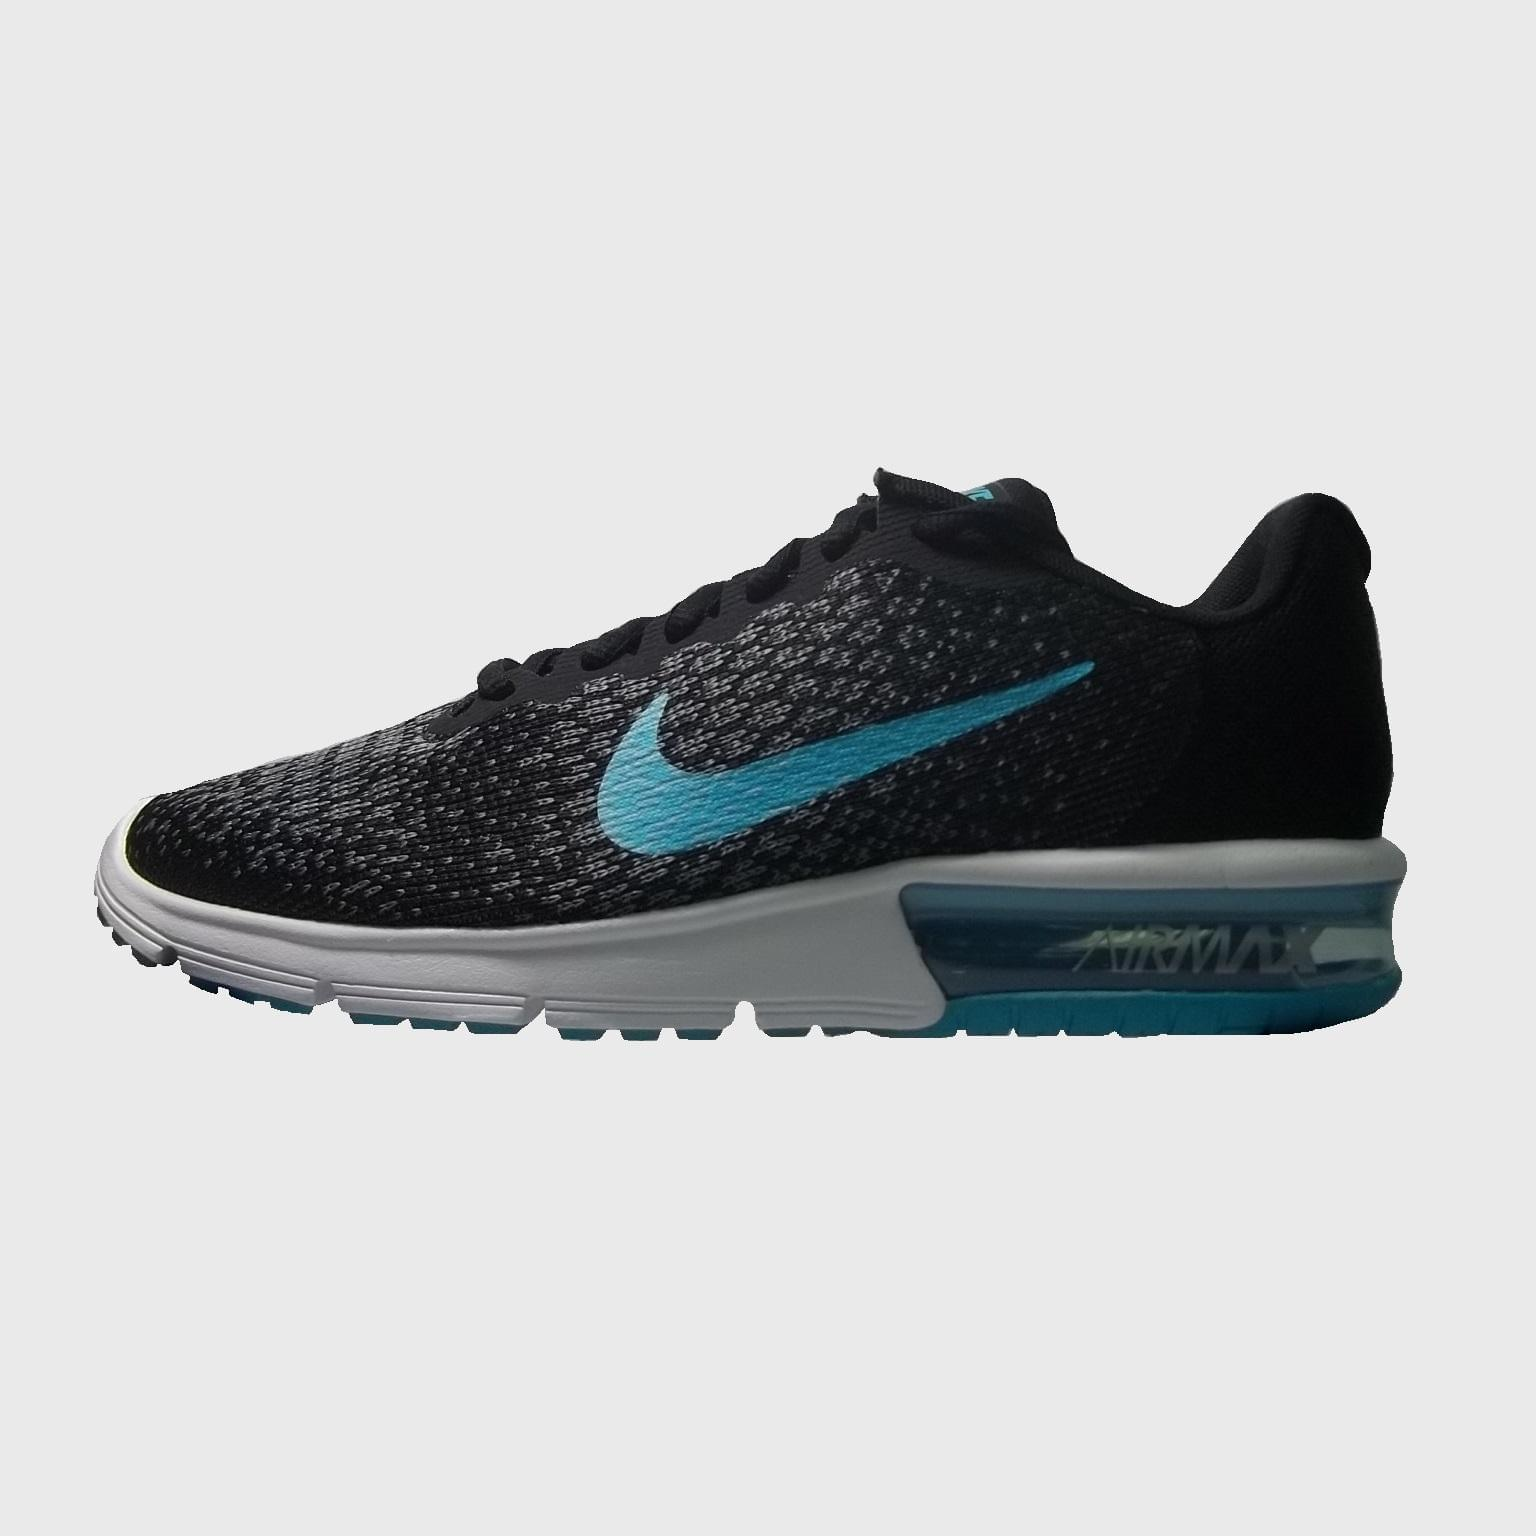 purchase cheap b7566 f8060 NIKE AIR MAX SEQUENT 2 MENS - Poobie Naidoos